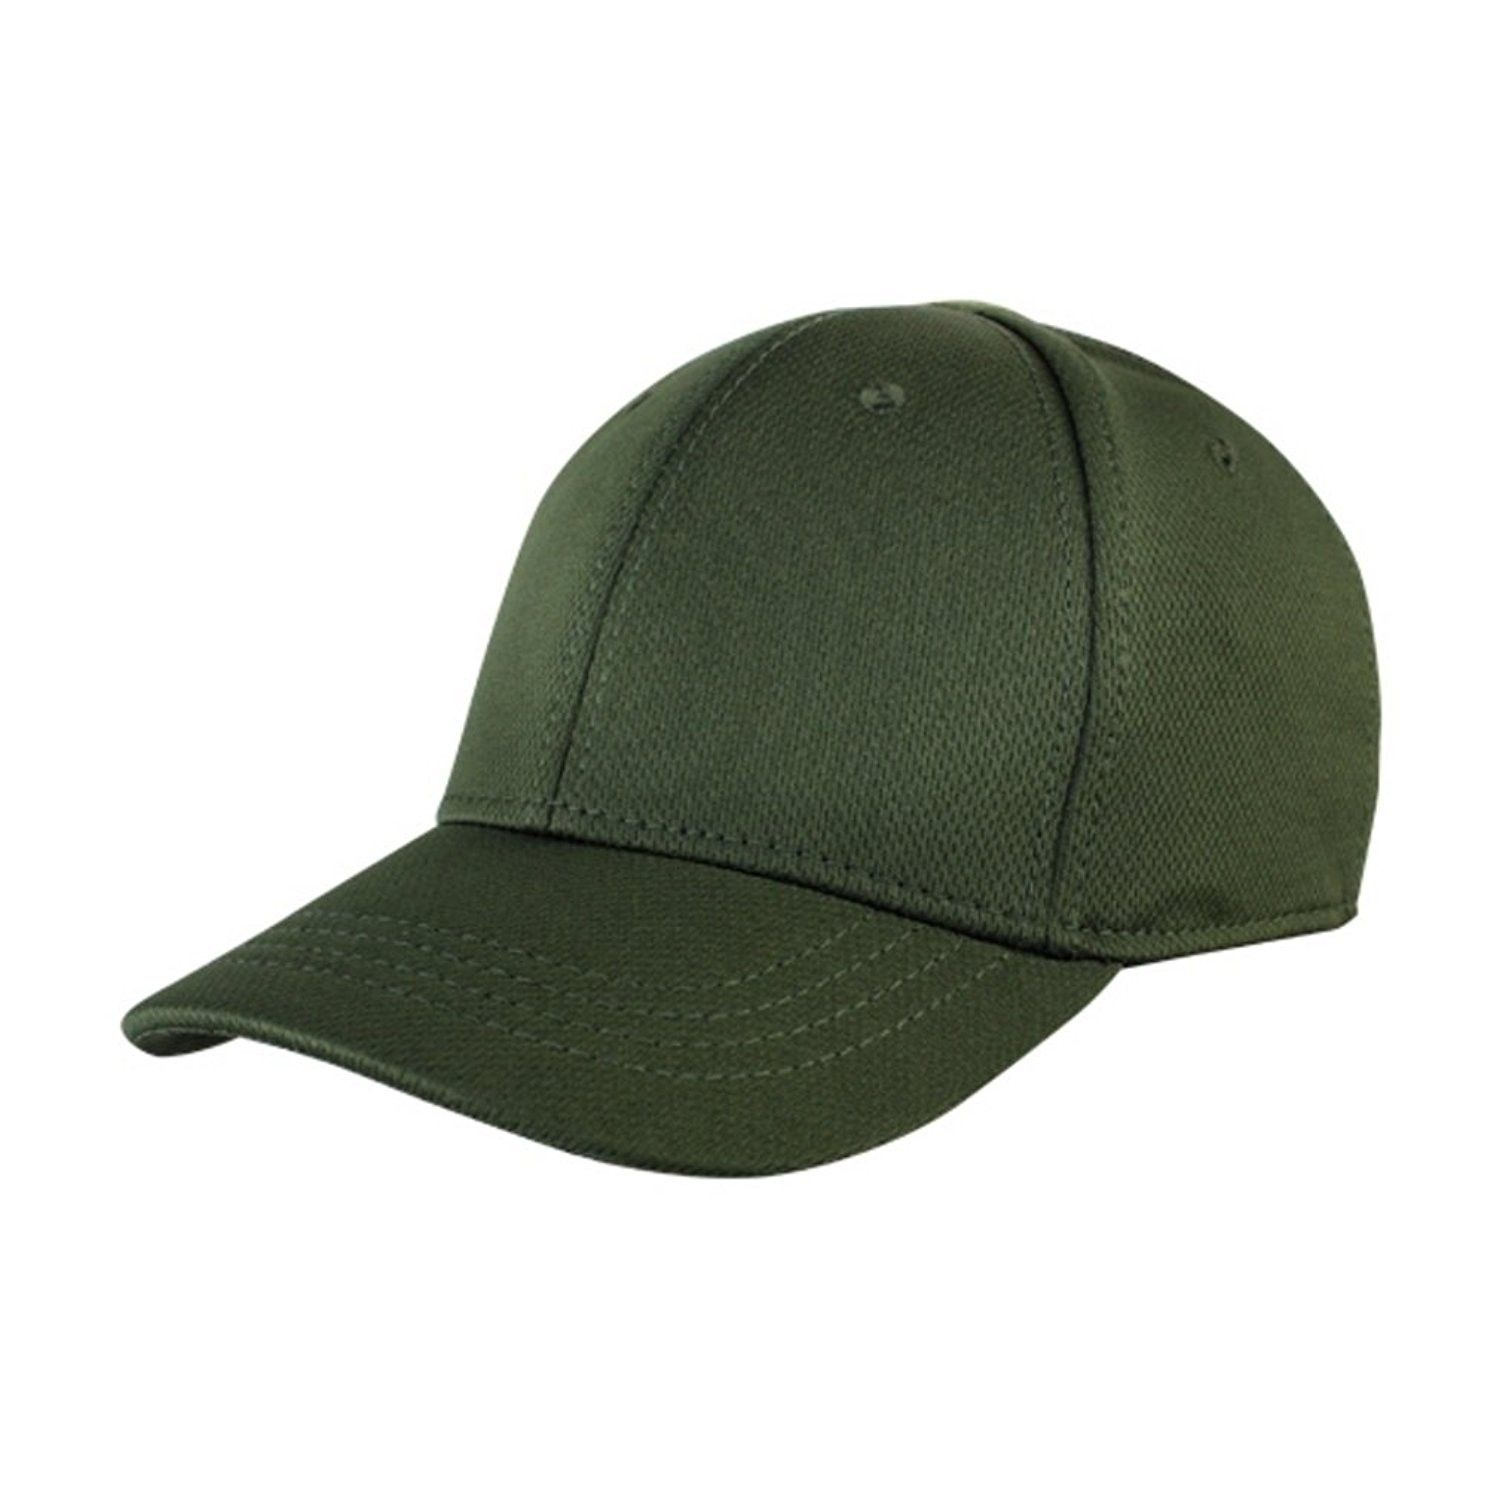 Condor Flex Tactical Team Cap (OD Green) + FREE Warrior Patch- Fitted Plain    Blank - C712MAX6L93 - Hats   Caps 565643cf692